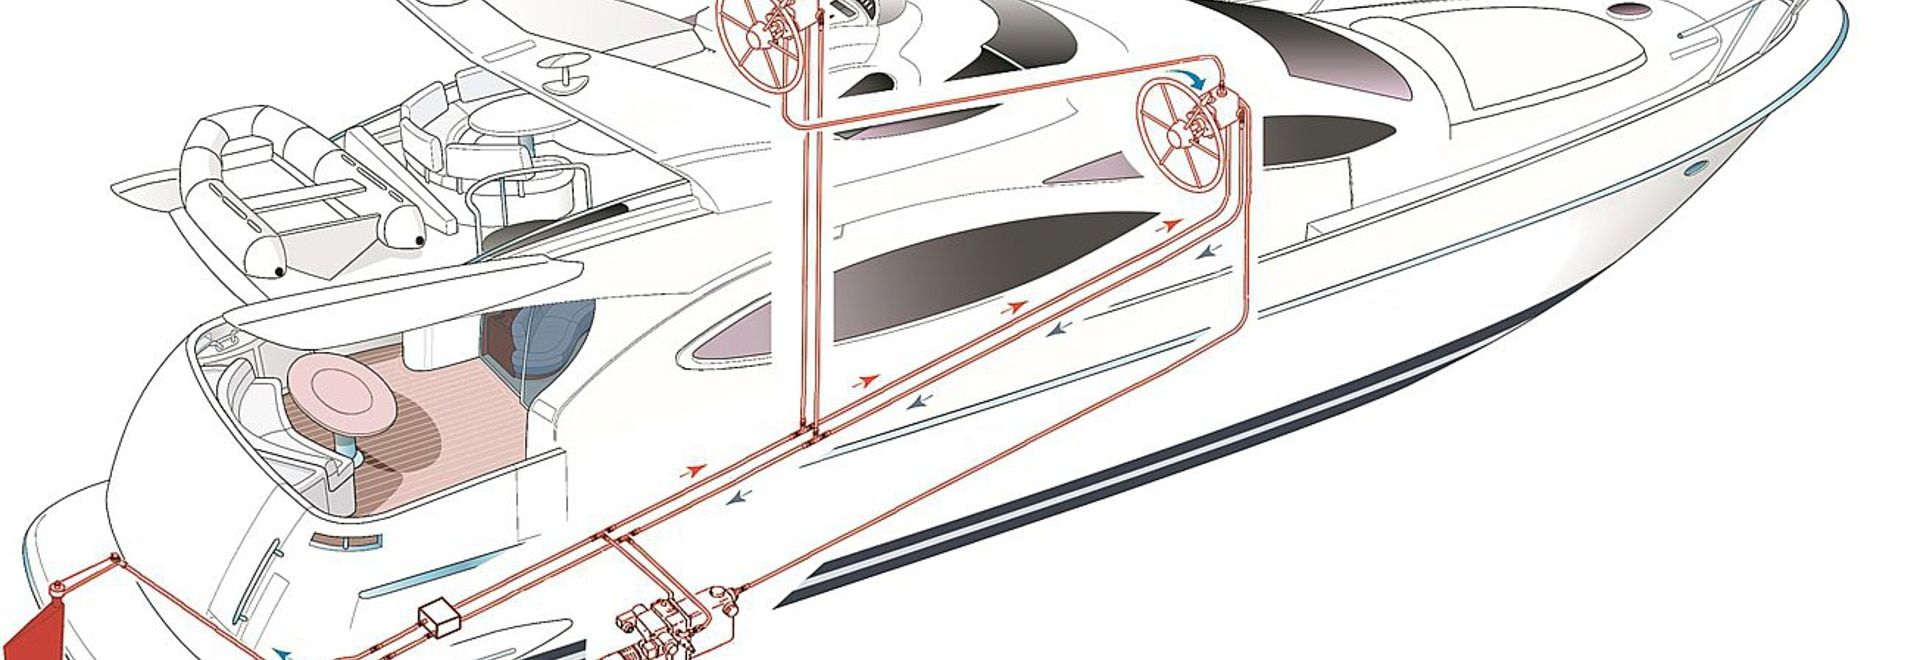 Exacting helm control possible with integrated systems